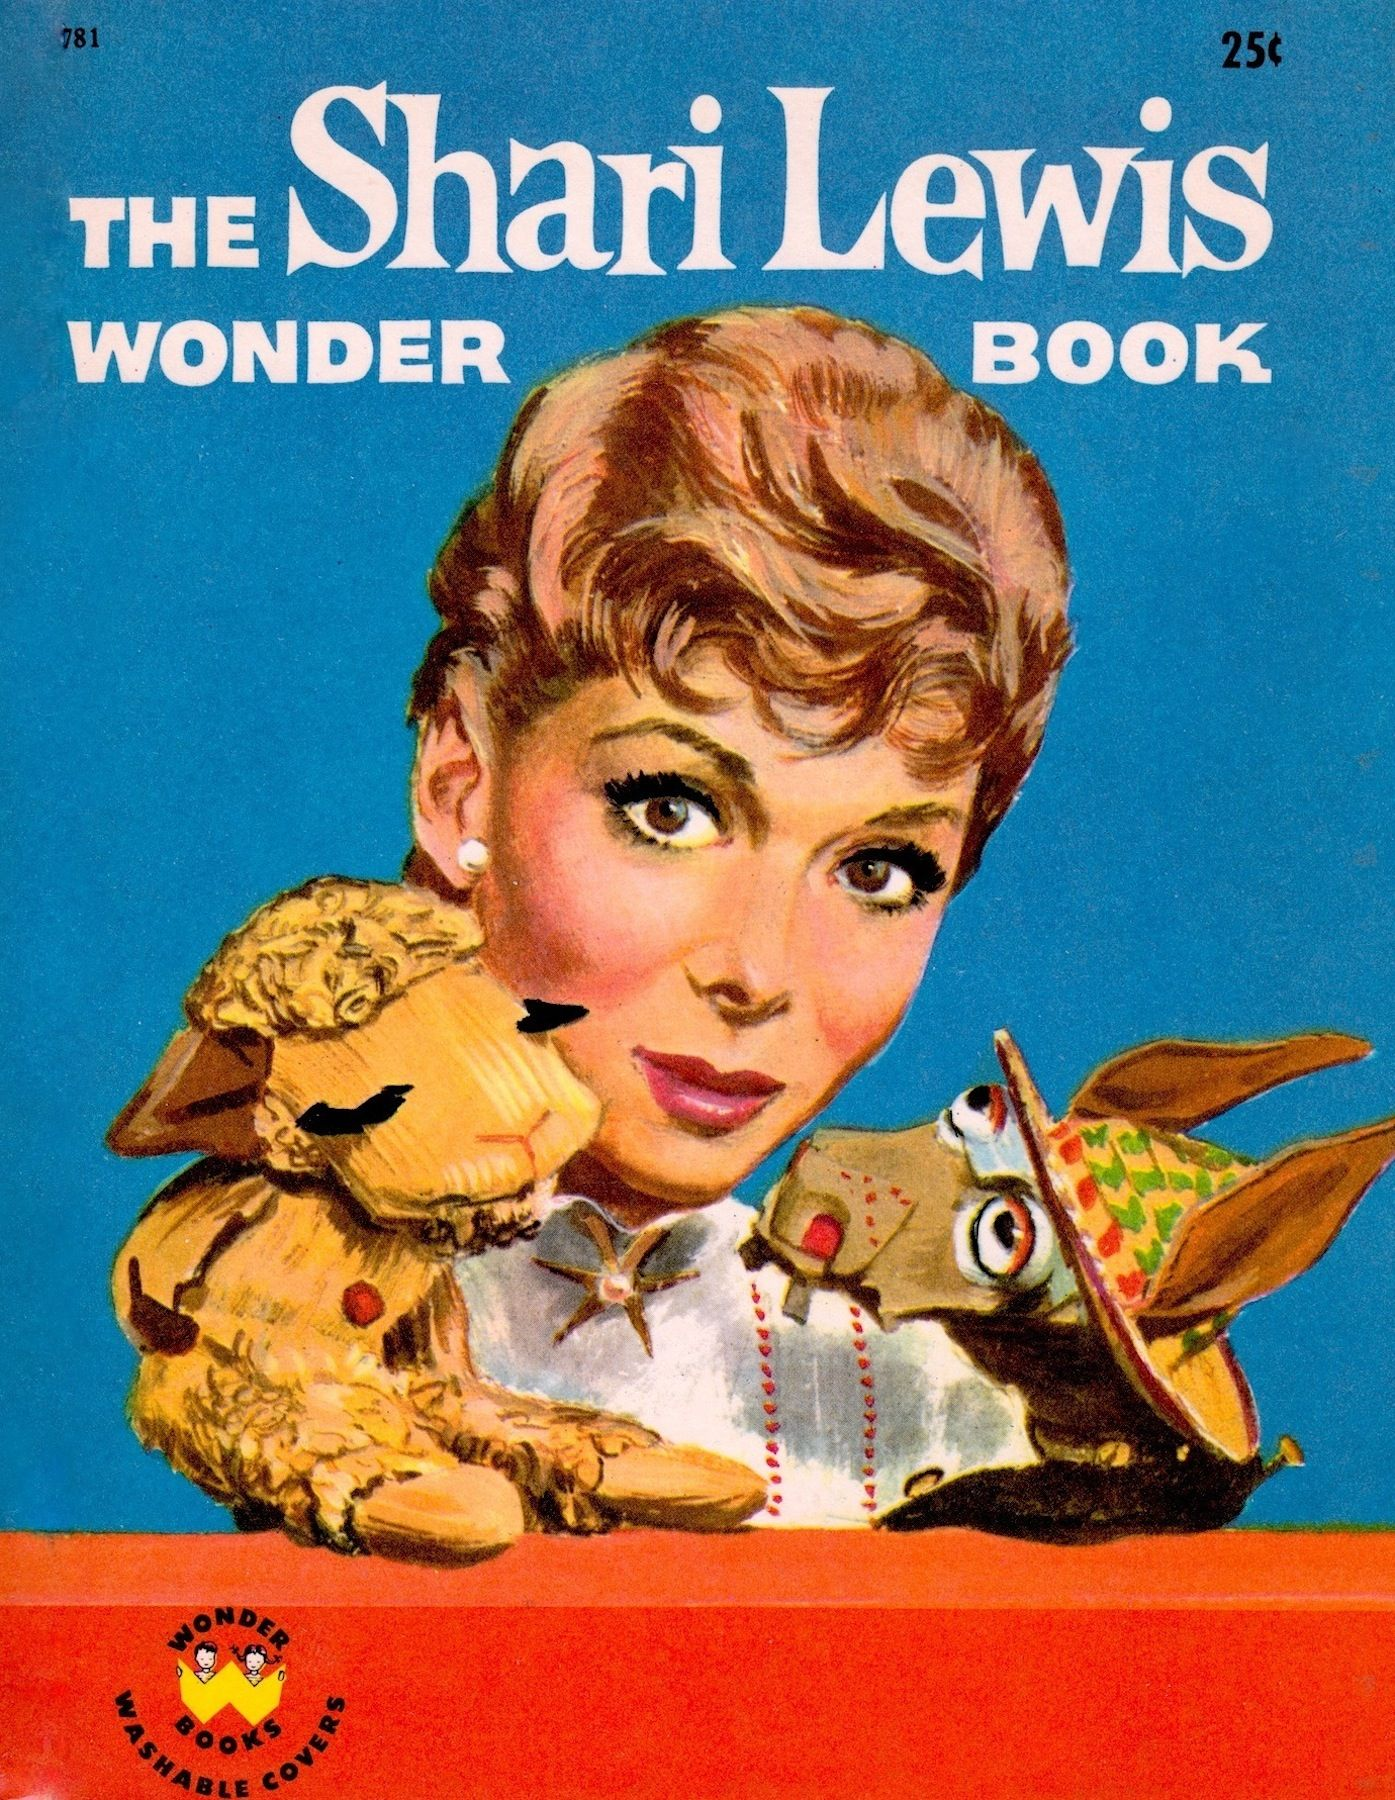 the shari lewis wonder book 1961 by crosby newell illustrations